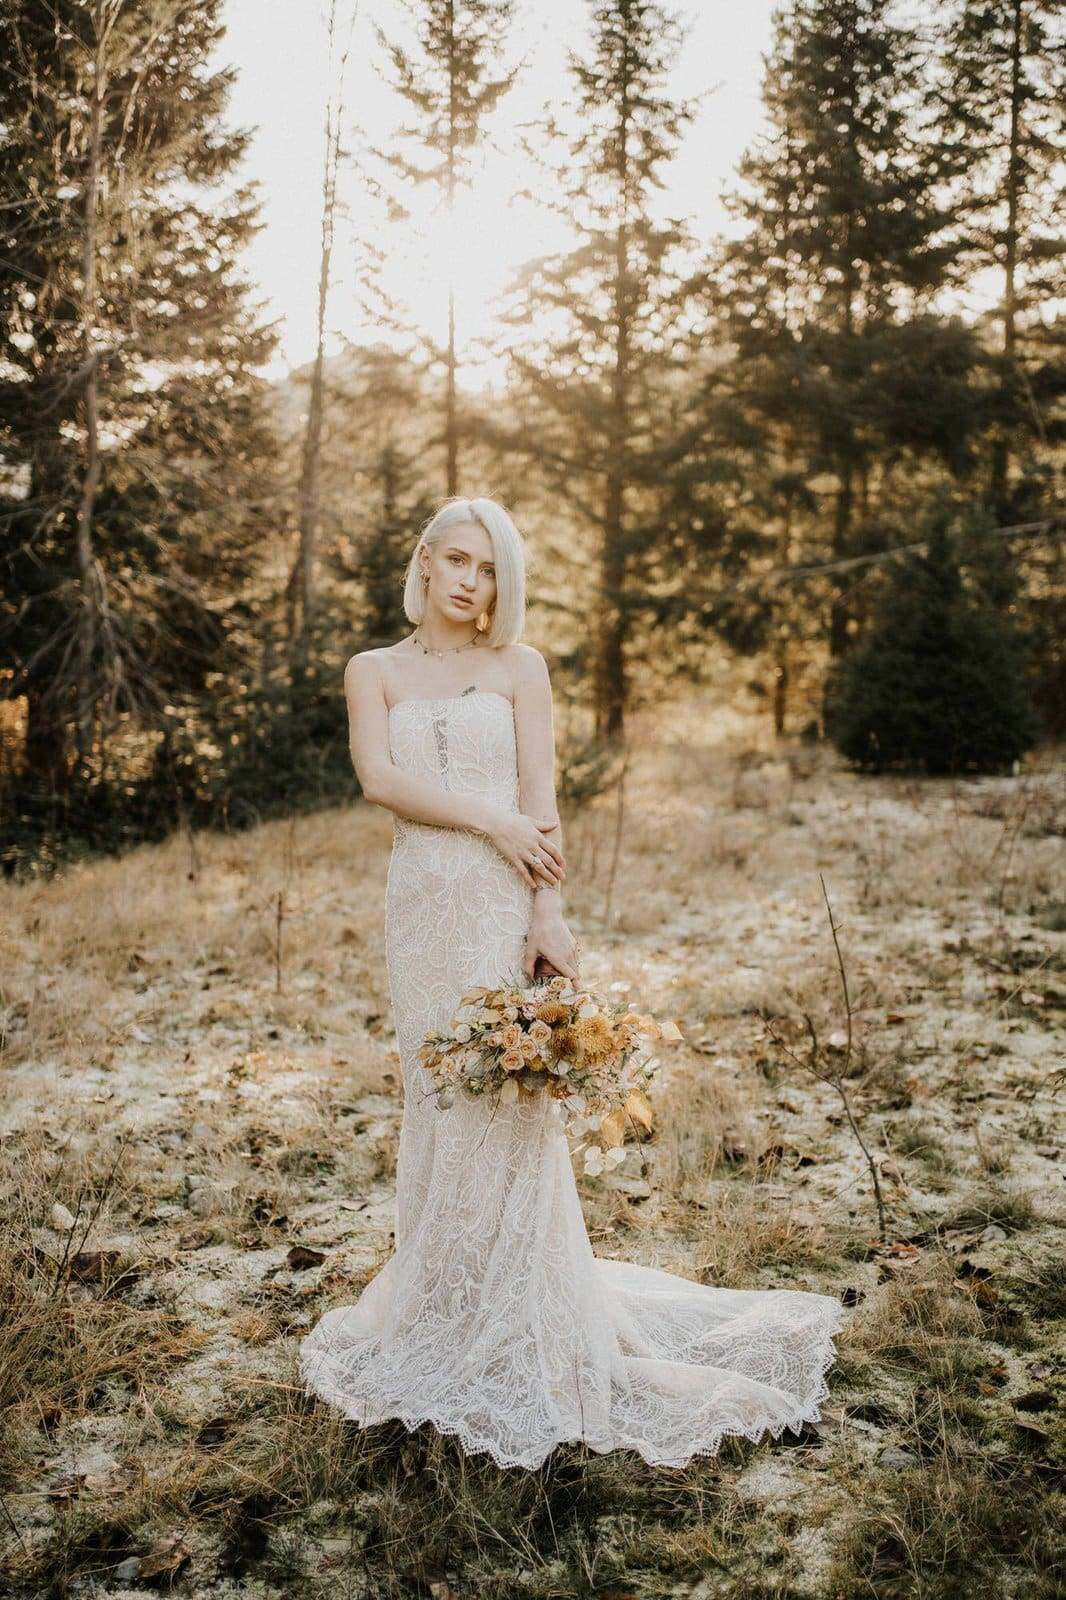 Bridal photography of essense of australia dress.